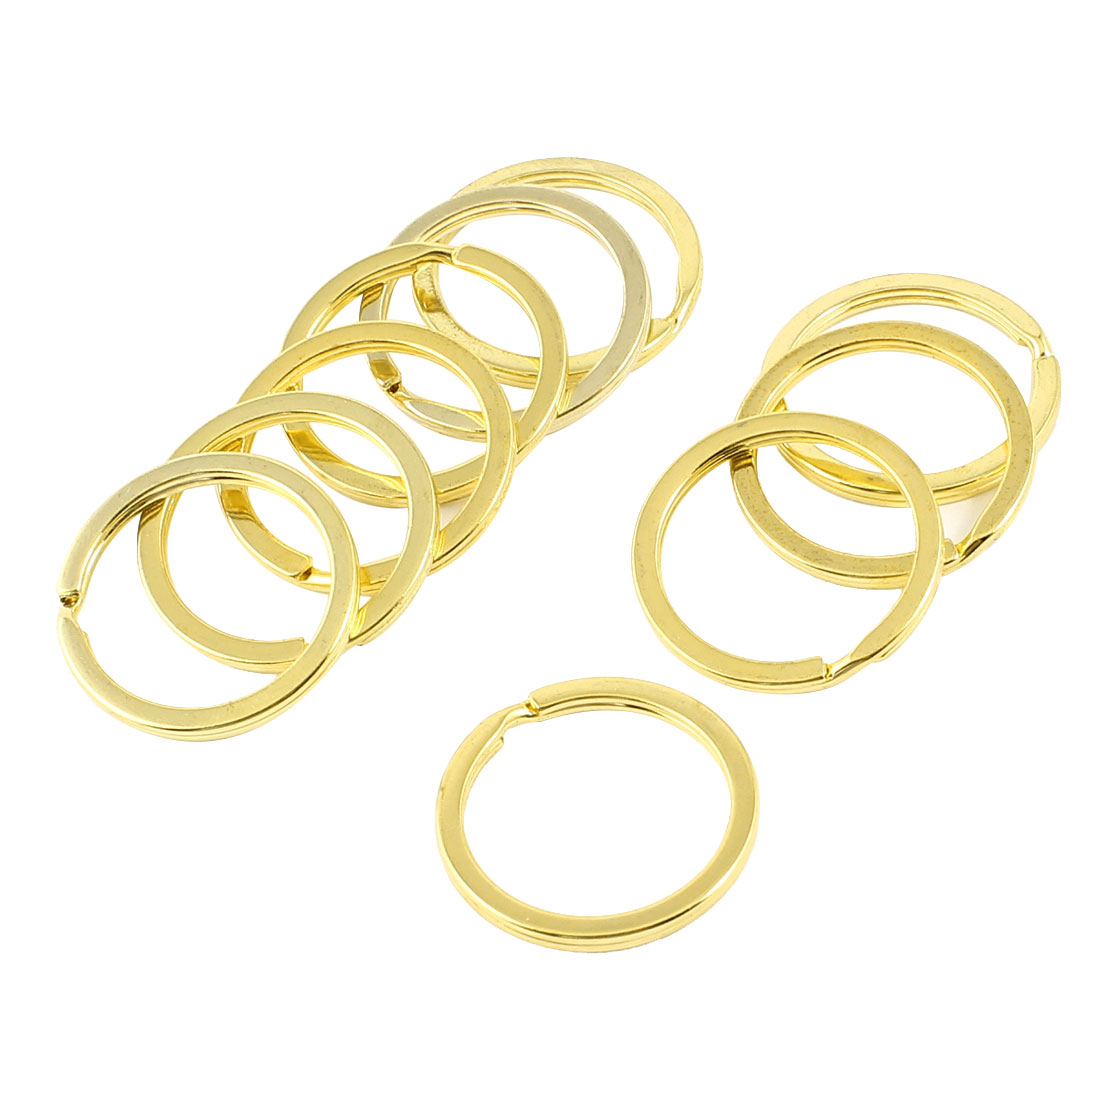 10 Pcs Gold Tone 30mm Diameter Split Rings Key Holder Keyring